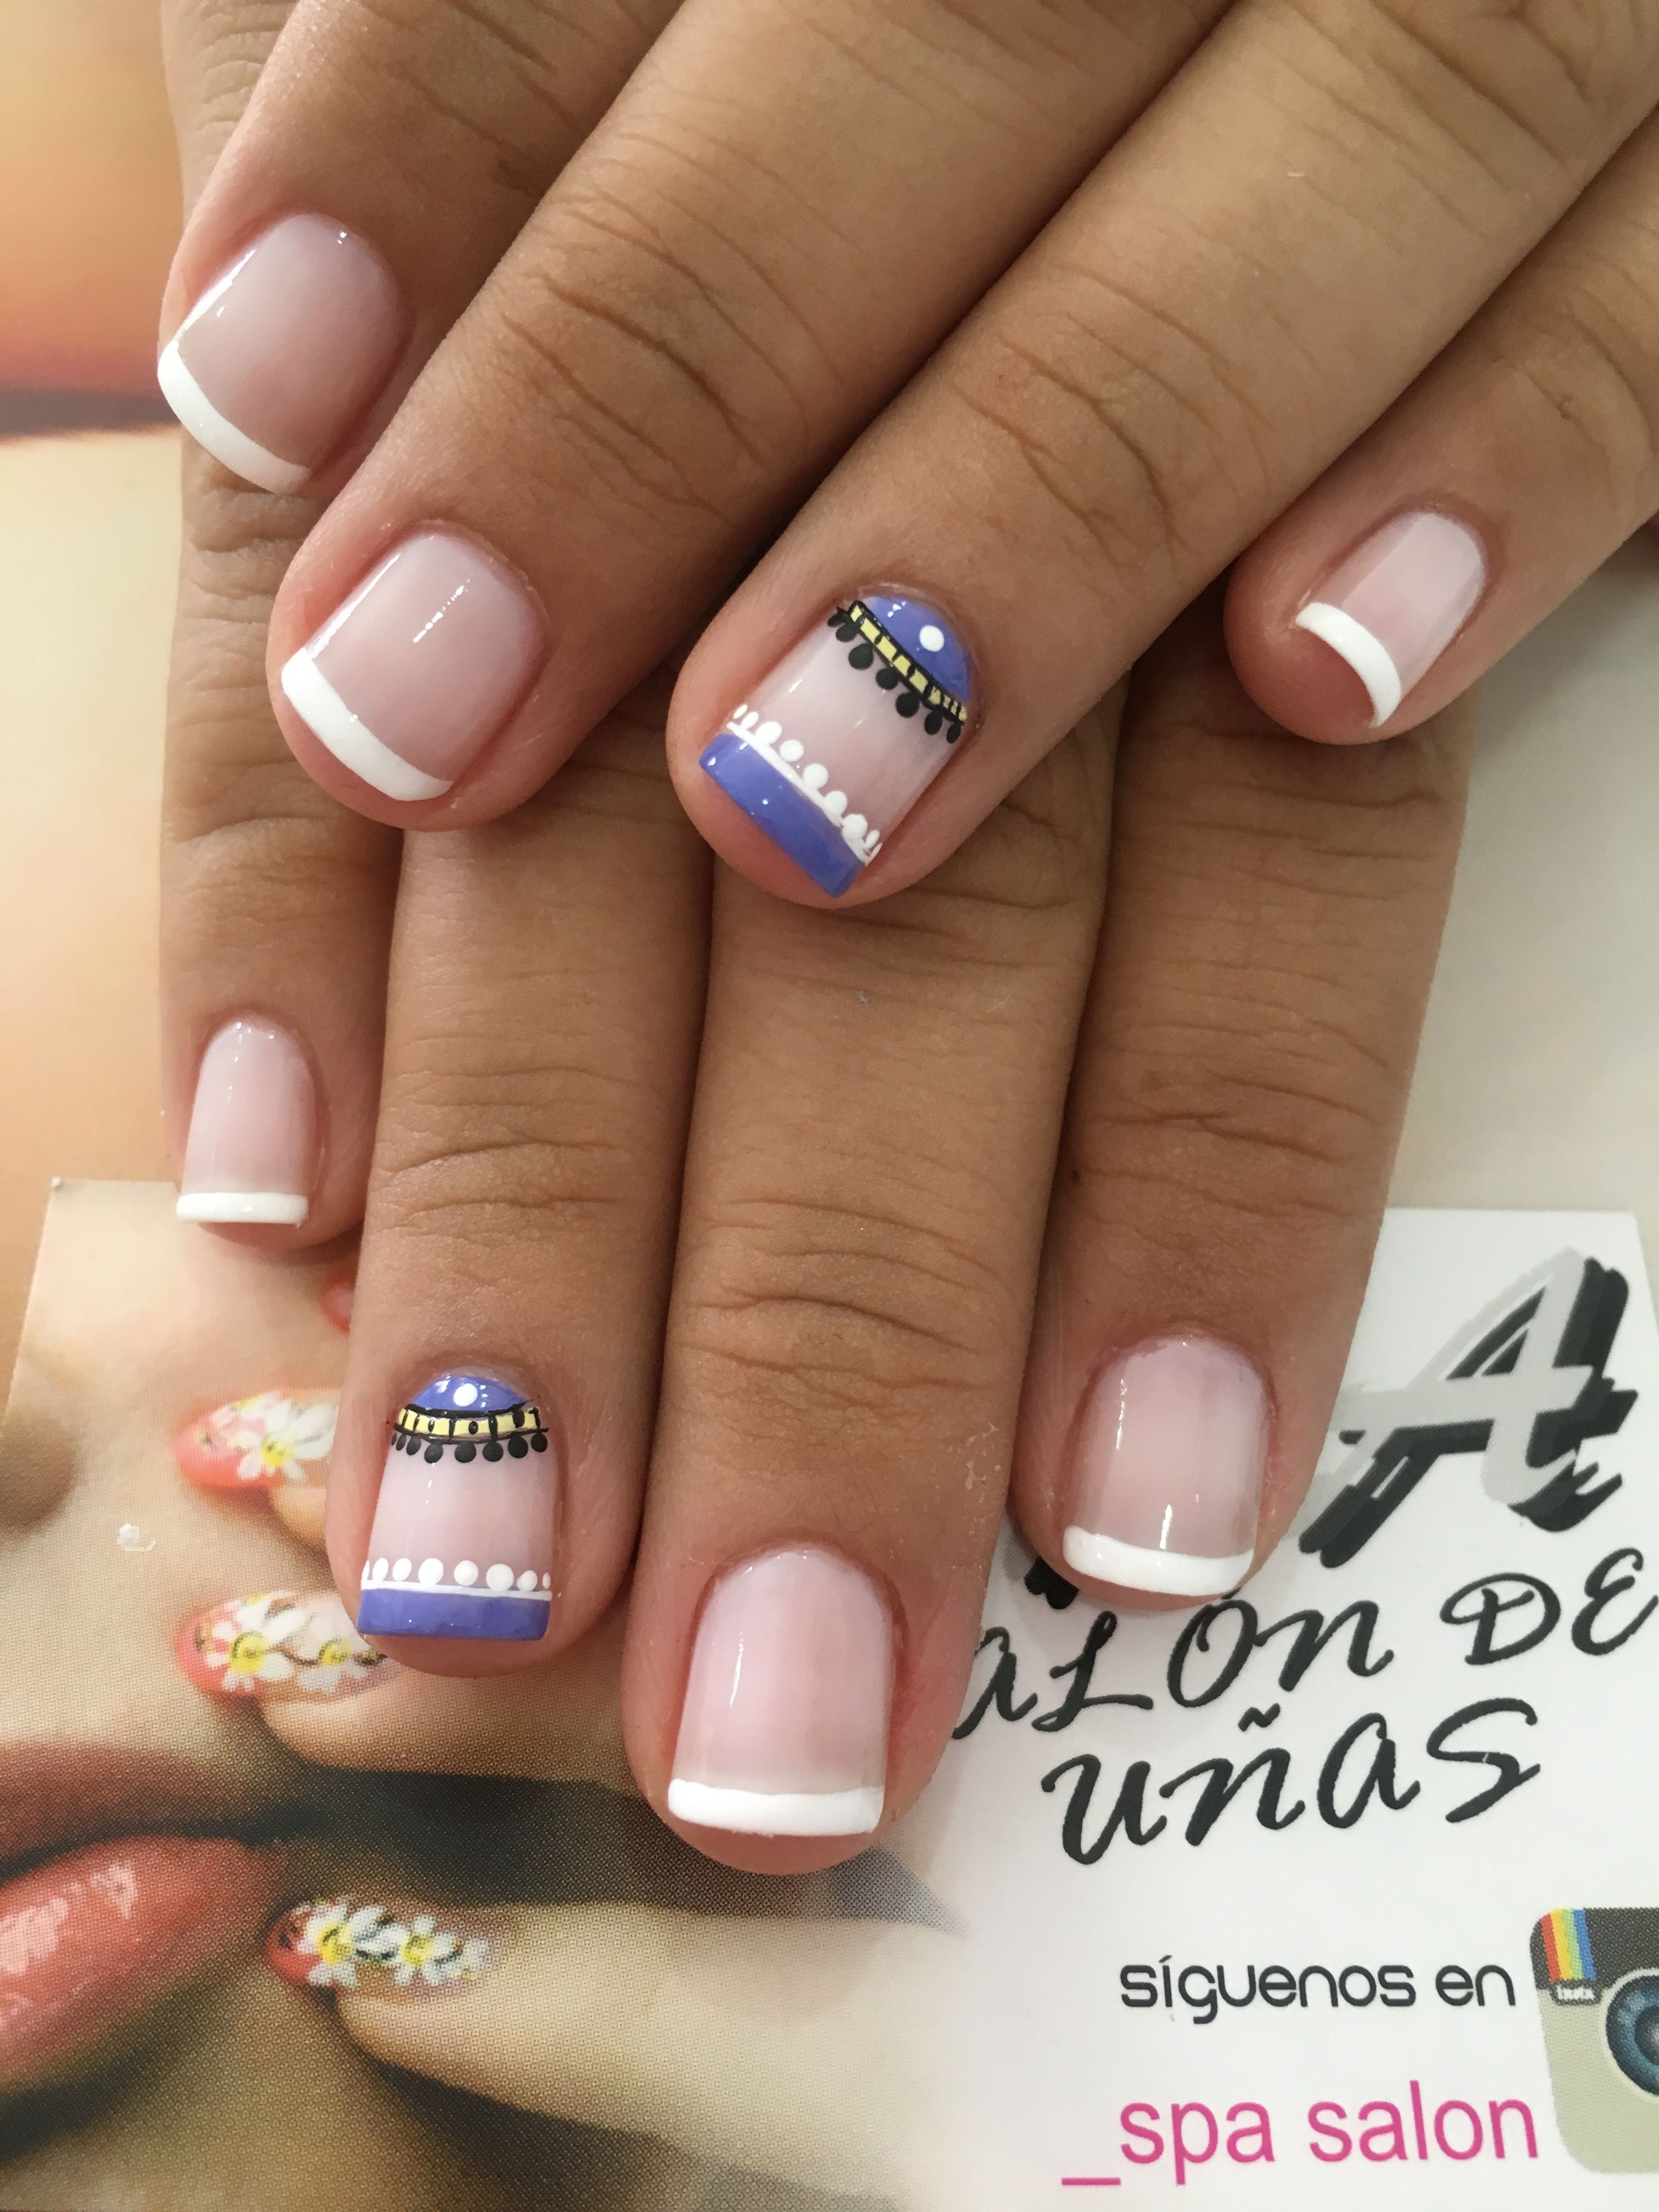 Pin De Maga Chic En Uñas Y Makeup Uñas Decoradas Sencillas